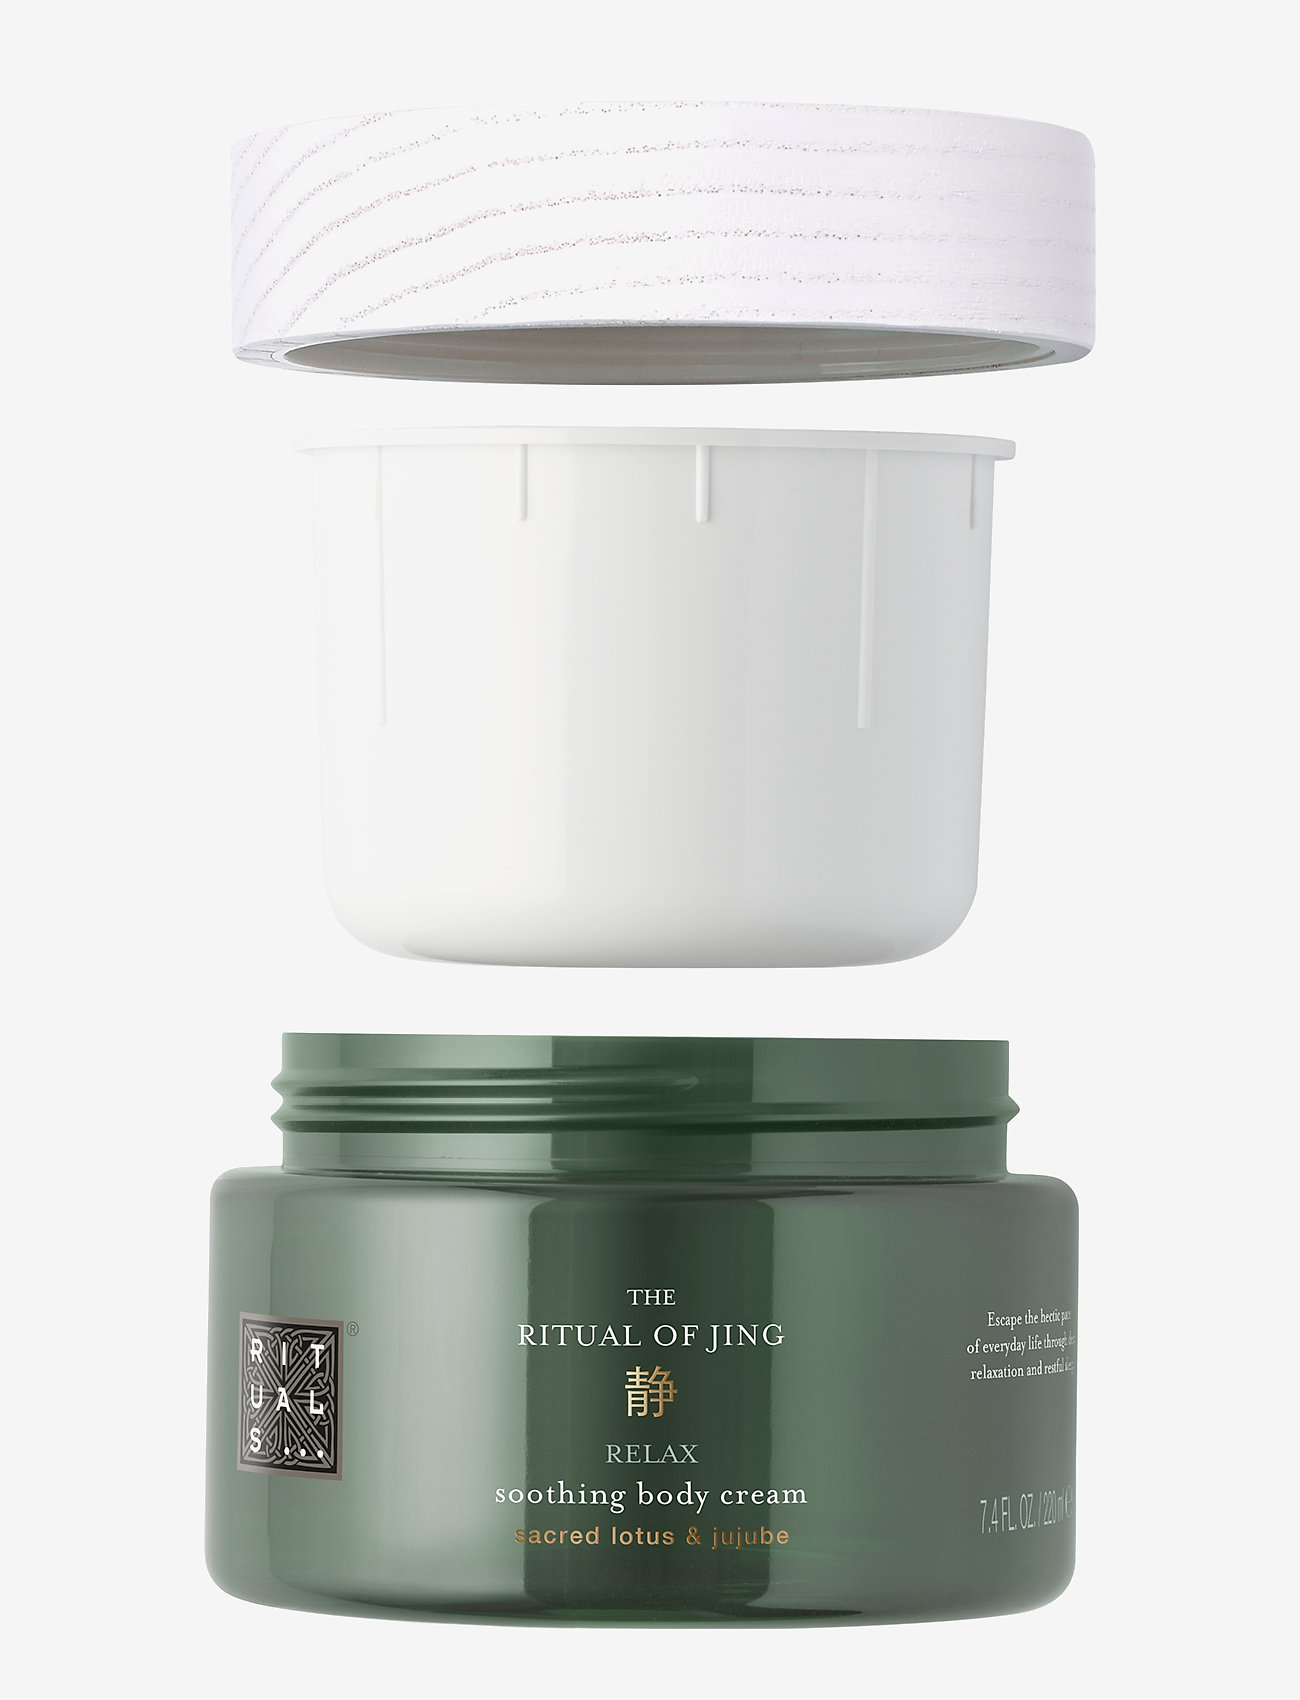 Rituals The Ritual Of Jing Body Cream - 155 kr RWzCMBL6